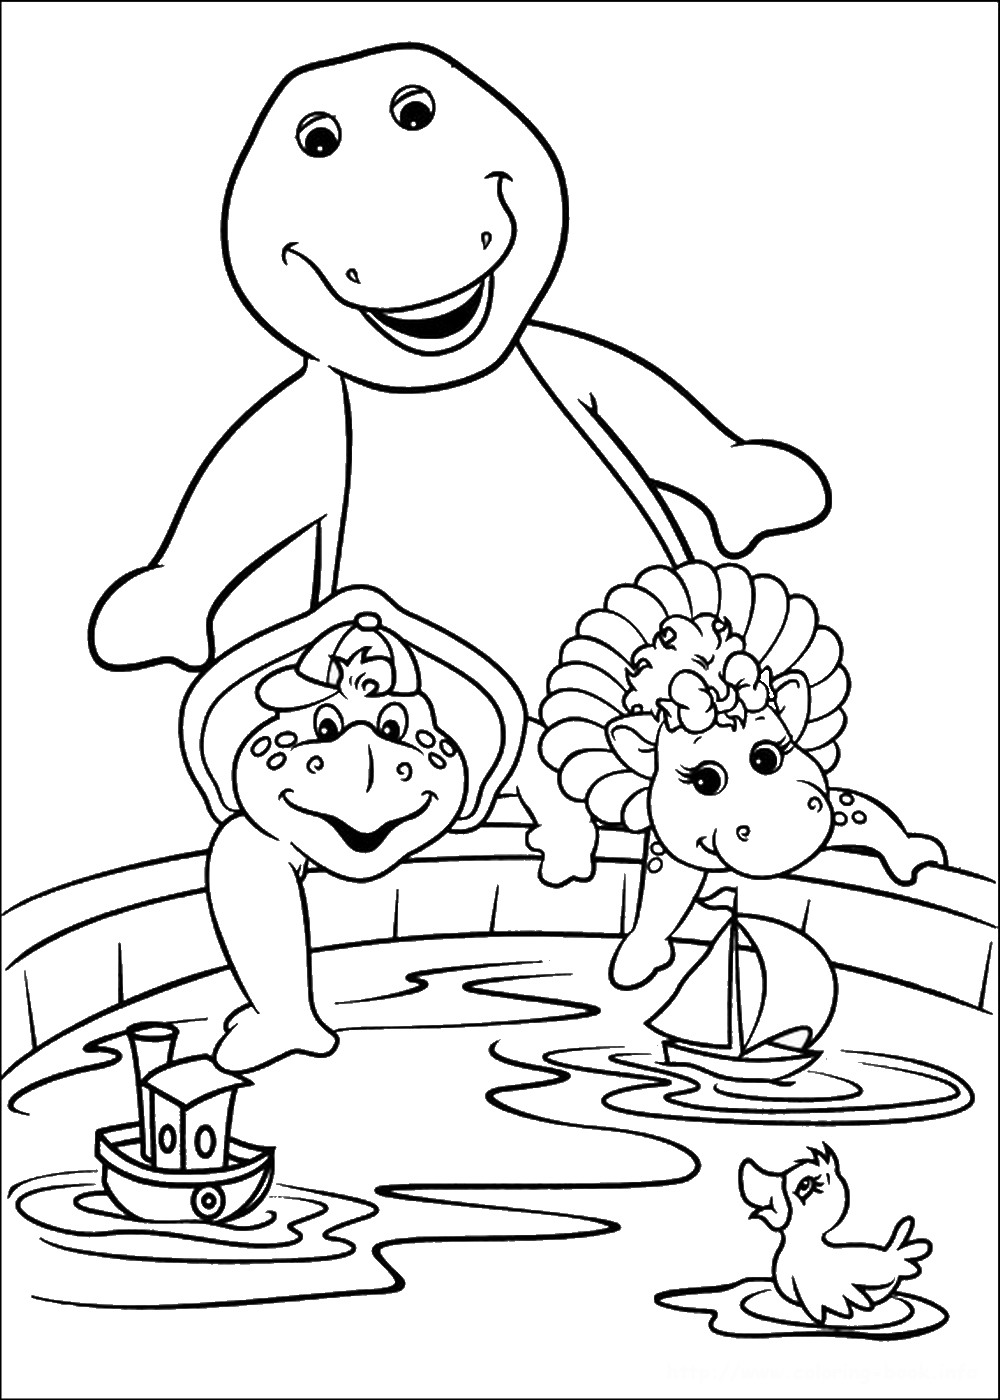 pics to colour barney coloring pages pics to colour